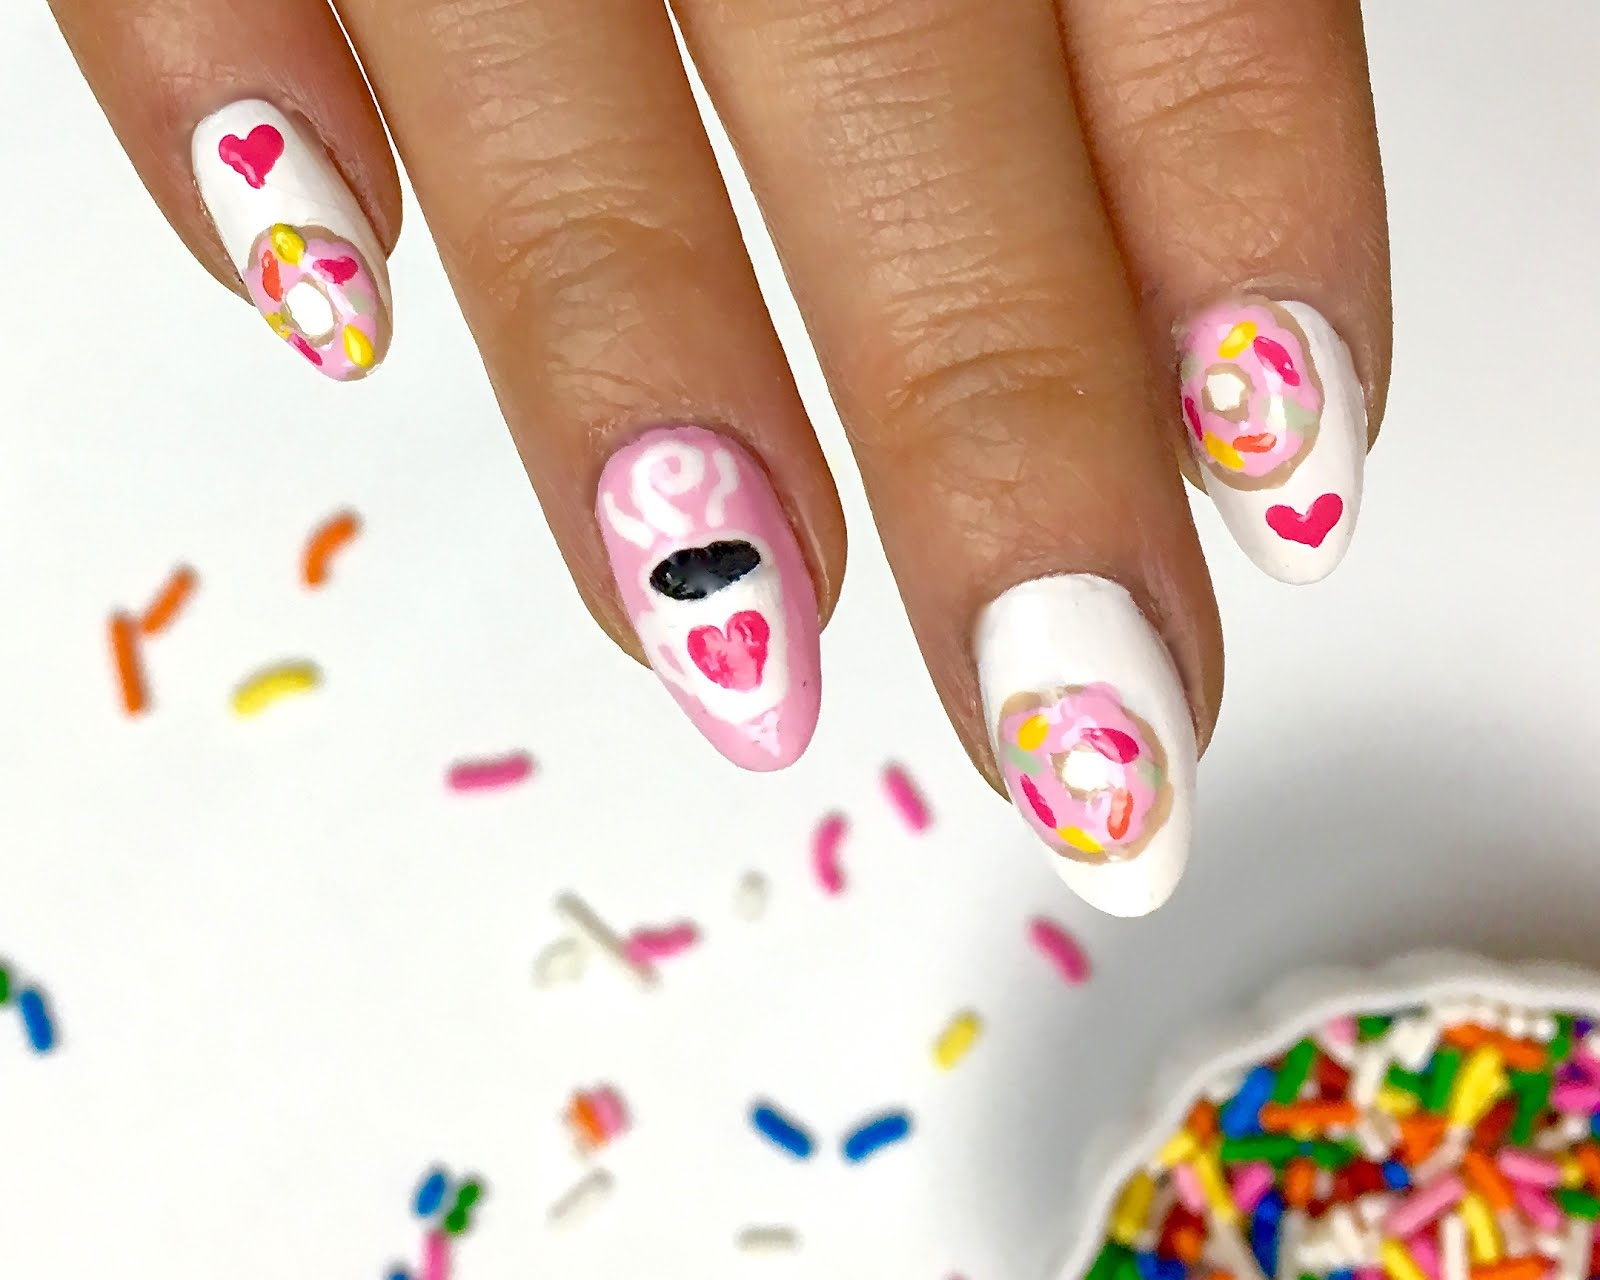 Video donut nail art design lindsay ann bakes click here to watch the video on youtube prinsesfo Gallery